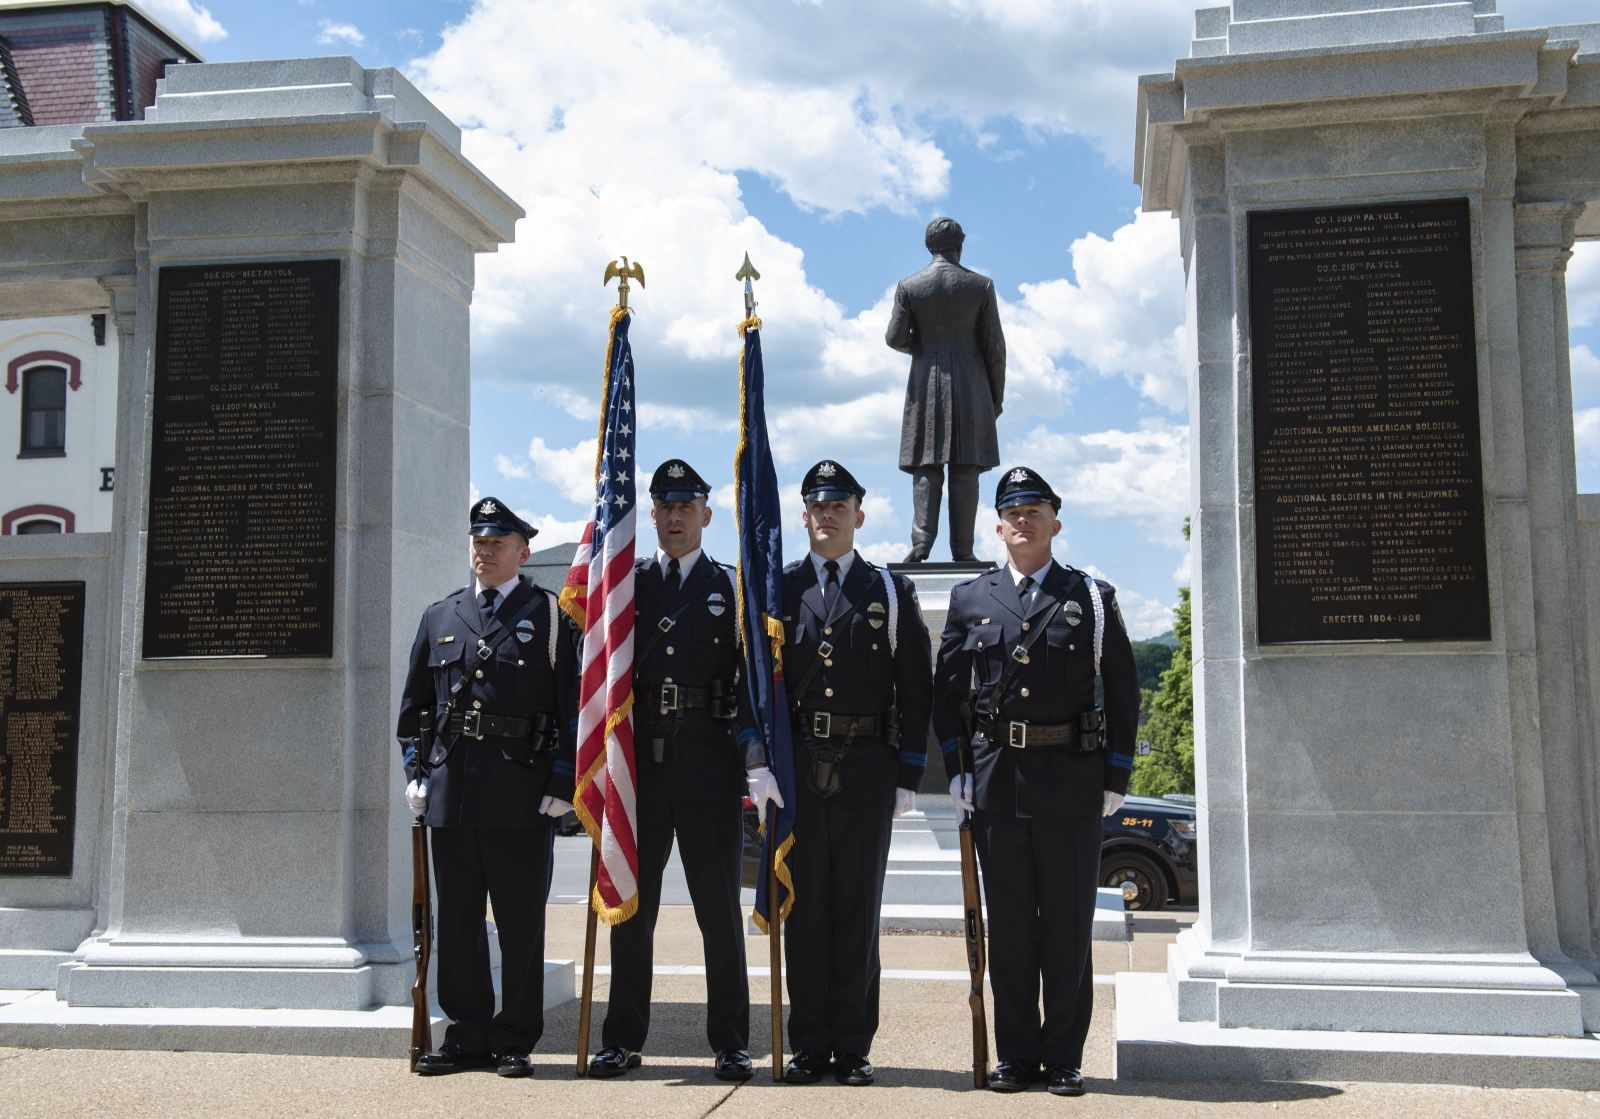 State College police officers attend the annual Centre County Law Enforcement Memorial ceremony at the Centre County Courthouse in Bellefonte on Wednesday, May 15, 2019.